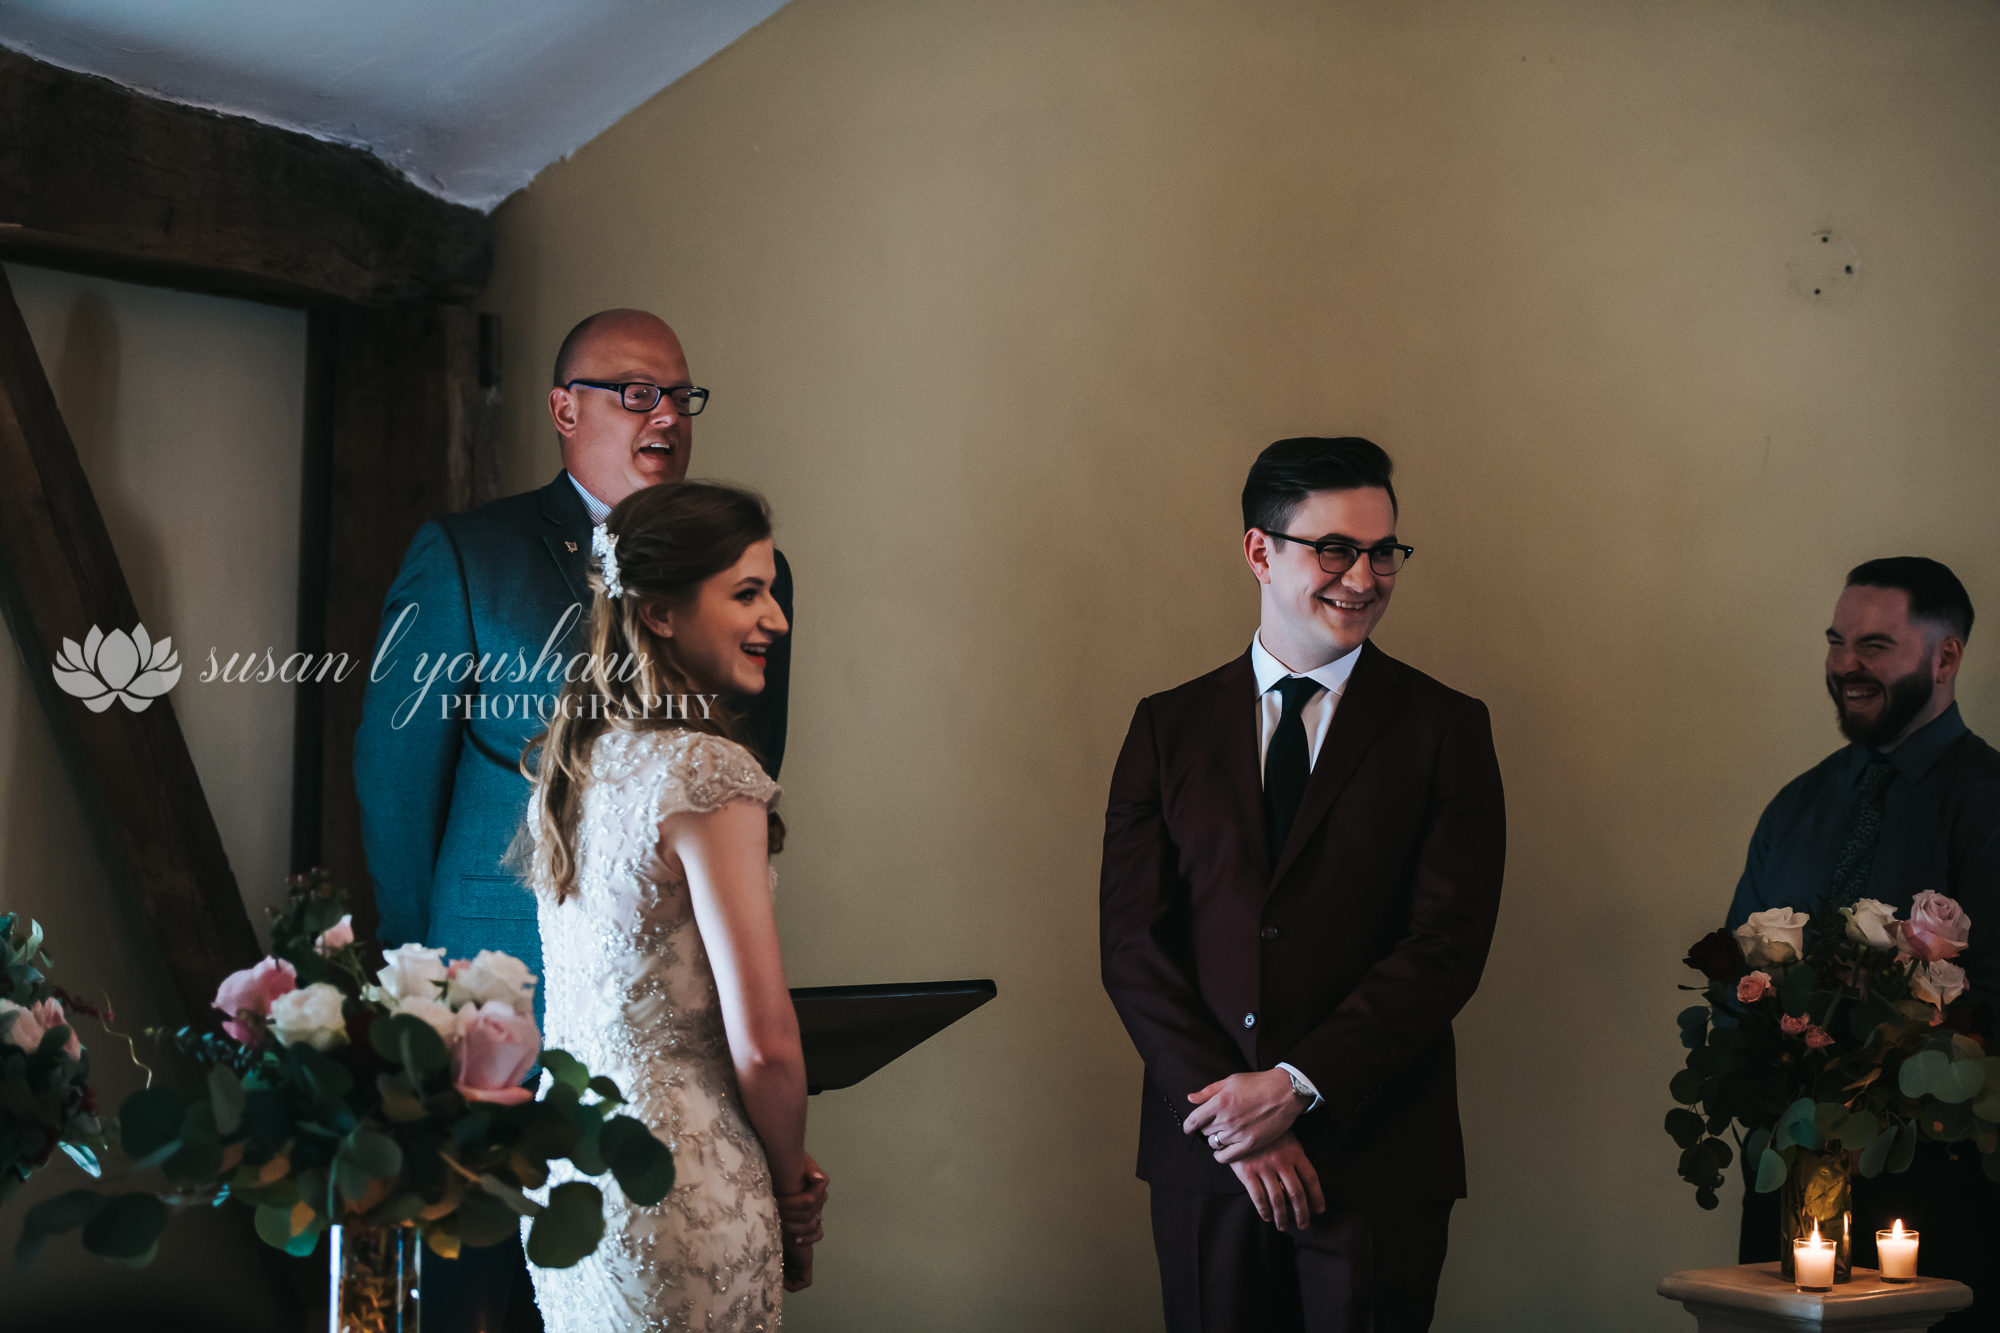 Chynna and John Wedding 05-18-2019 SLY Photography-96.jpg